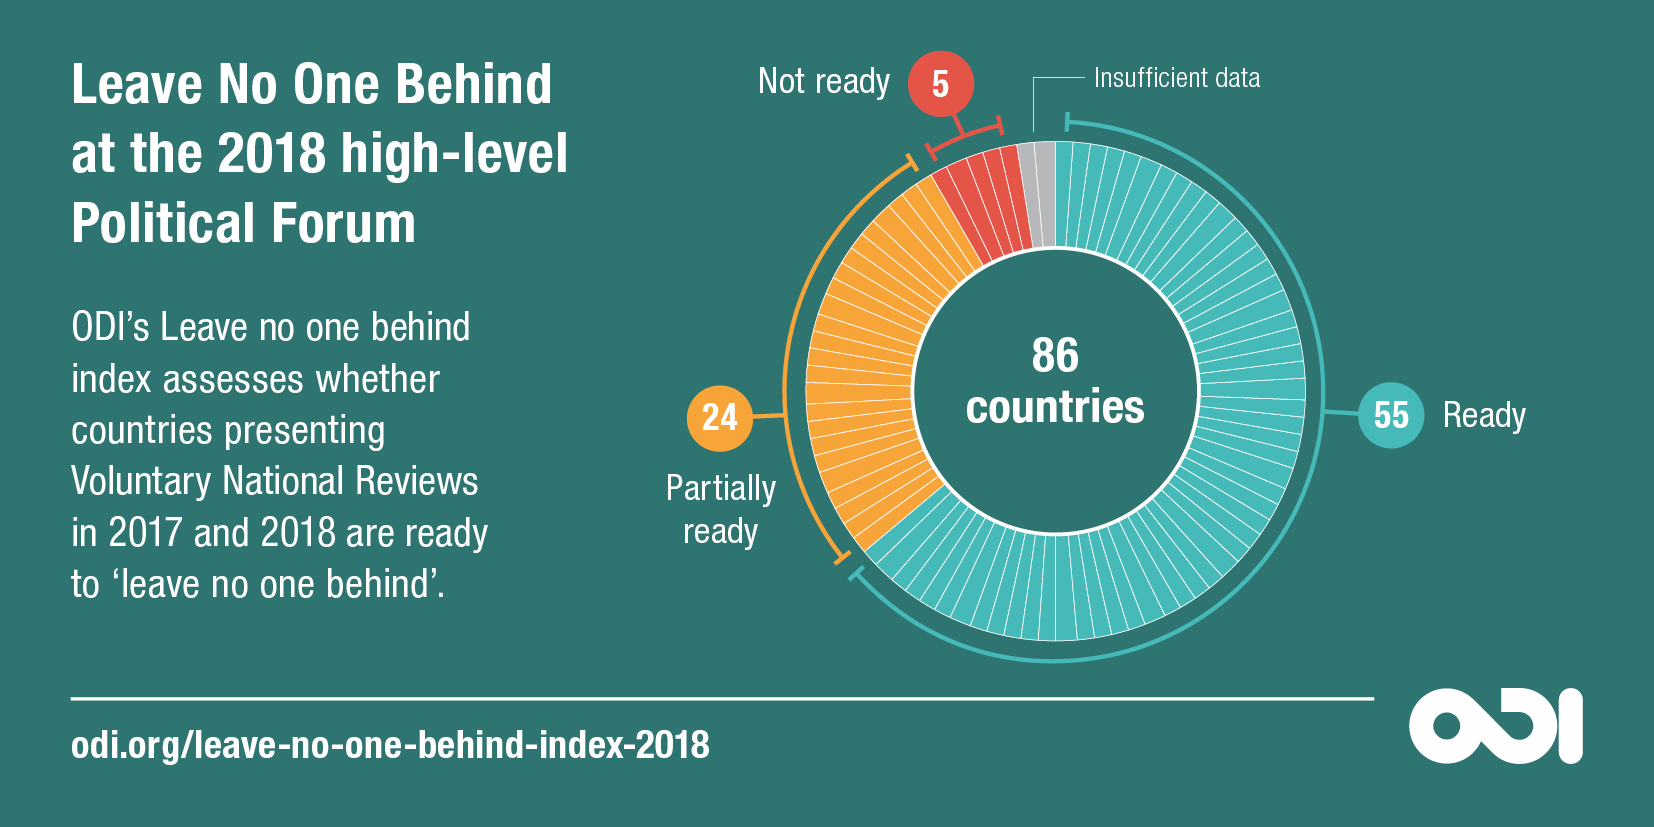 'Leave no one behind' at the 2018 high-level Political Forum